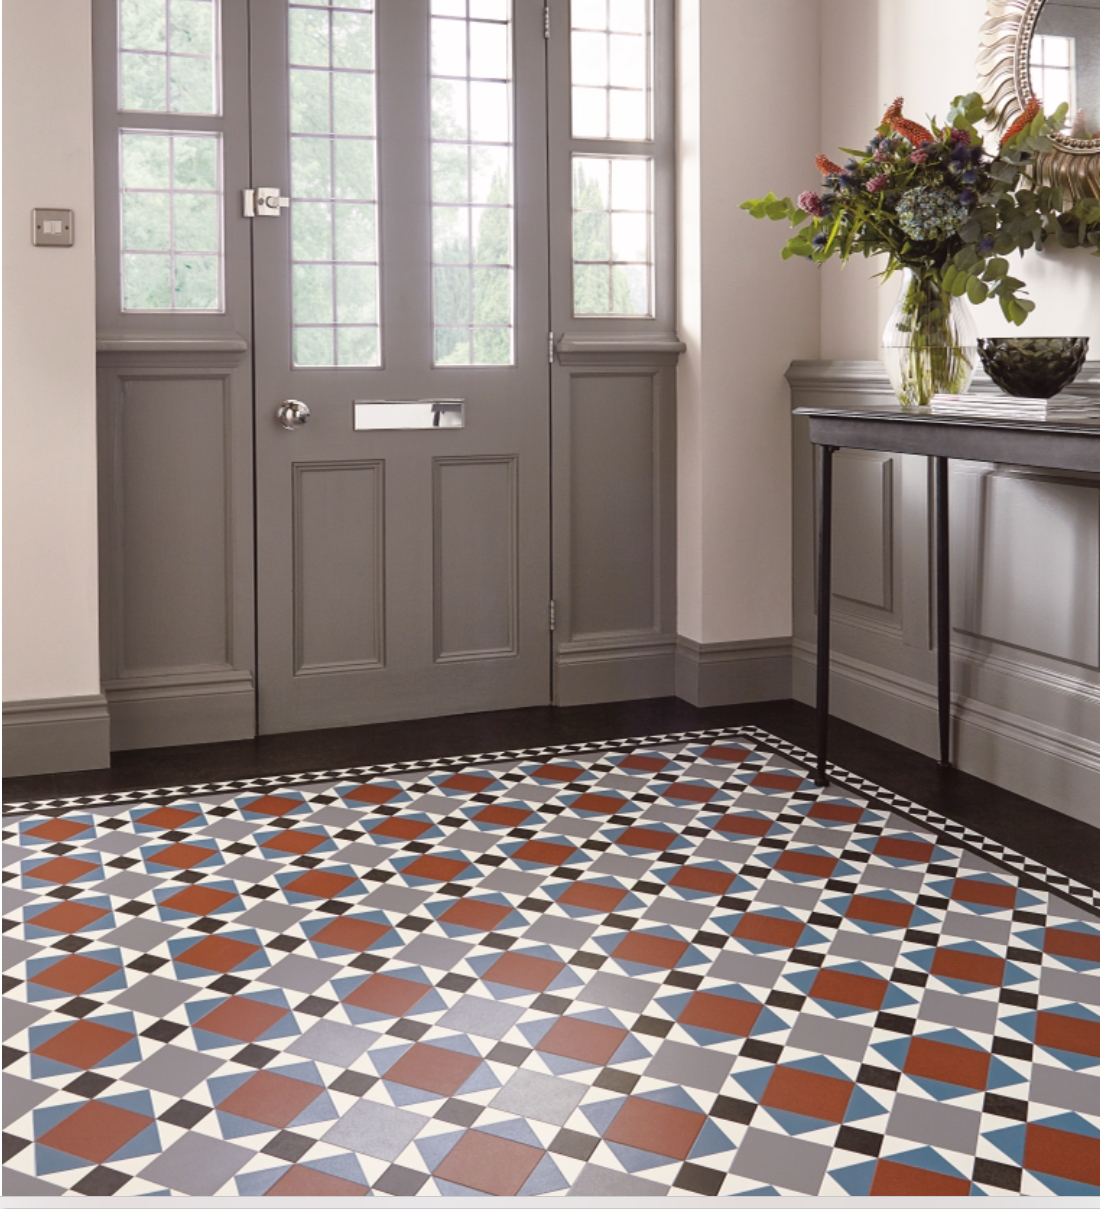 Hallway with a grey front door with large windows, grey furniture and a patterned red blue and white floor